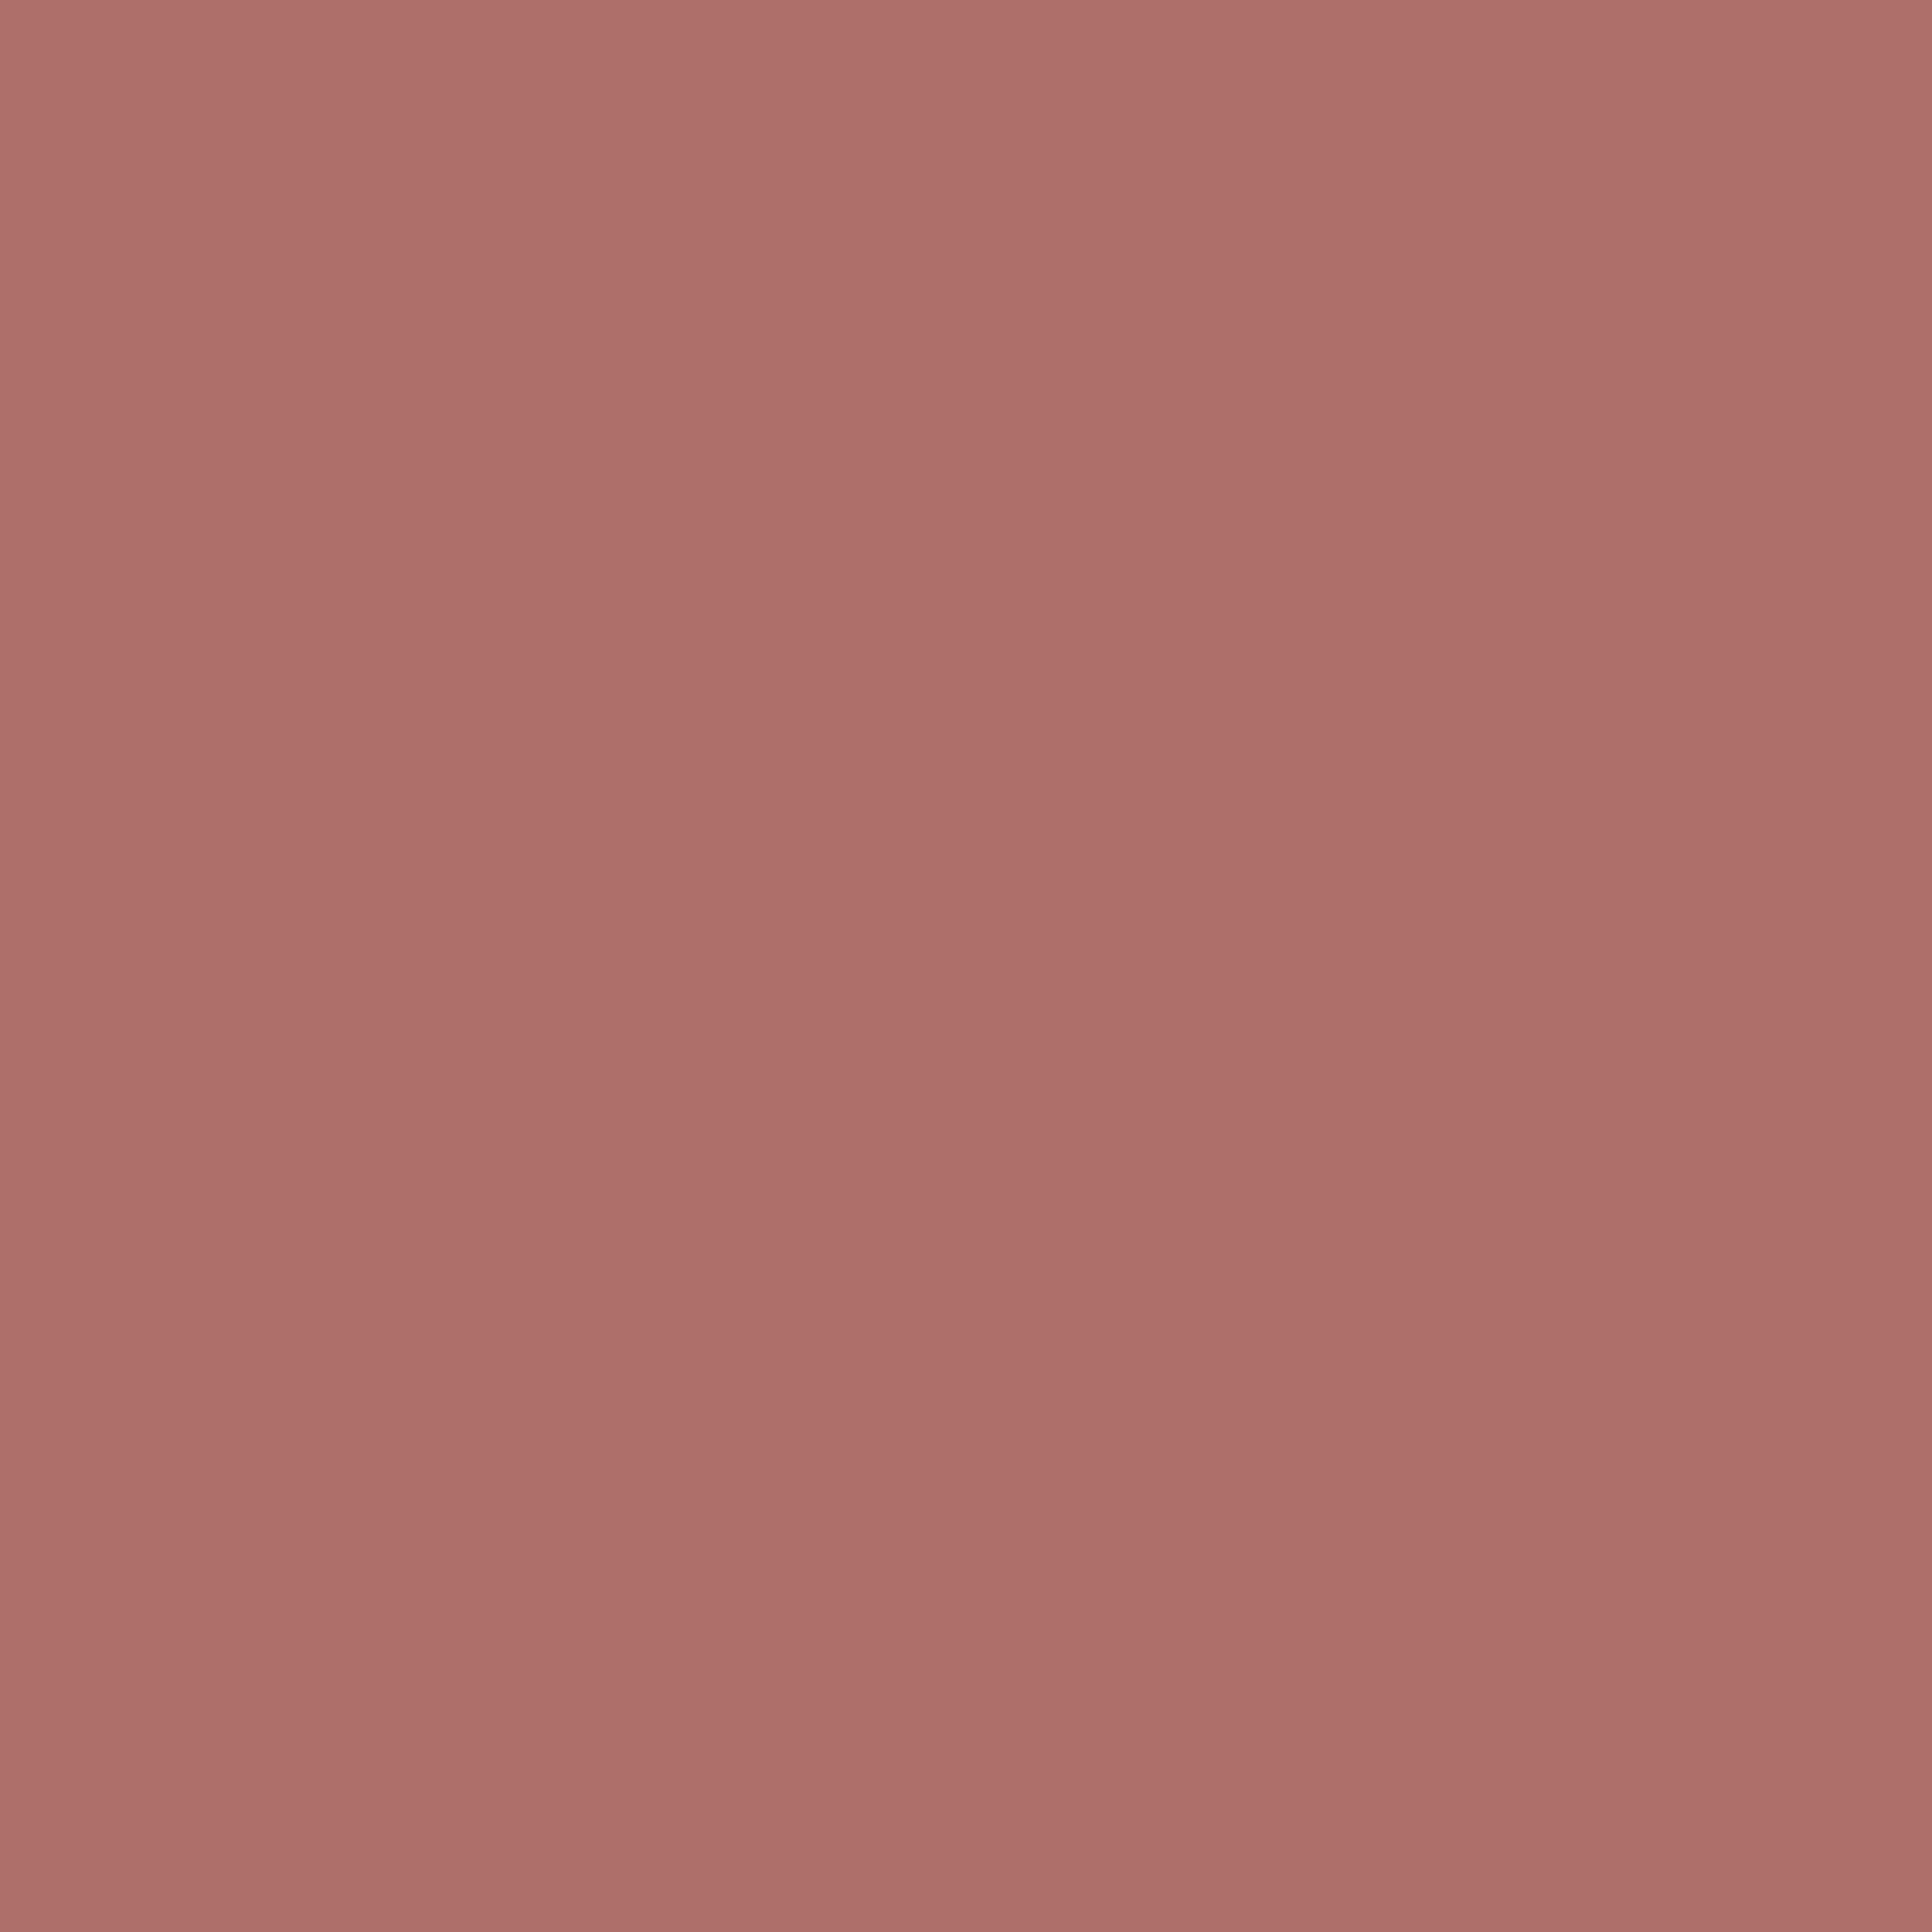 3600x3600 Copper Penny Solid Color Background